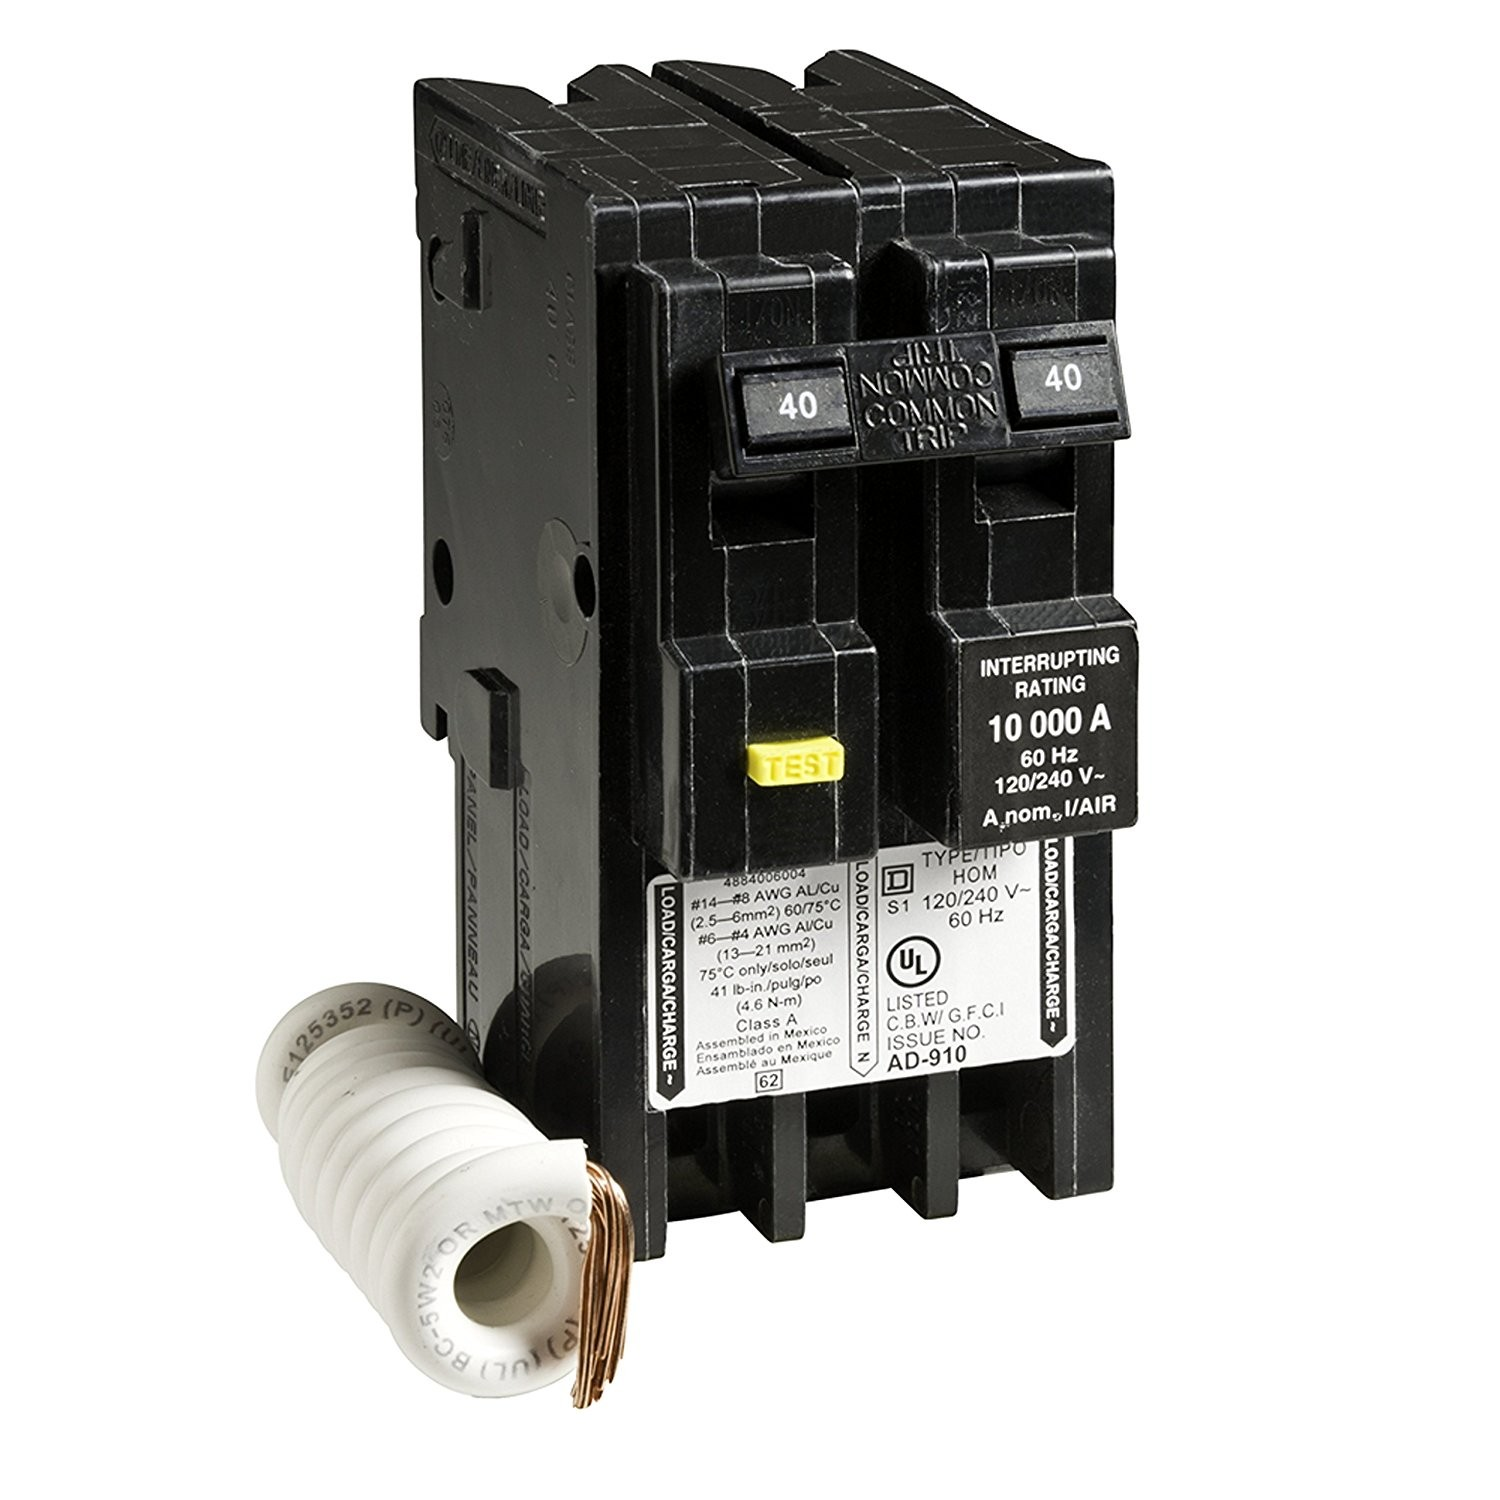 Qo Load Center Wiring Diagram My Electrical Diagrams Square D By Schneider Electric Hom240gfic Homeline 40 Amp Two Pole